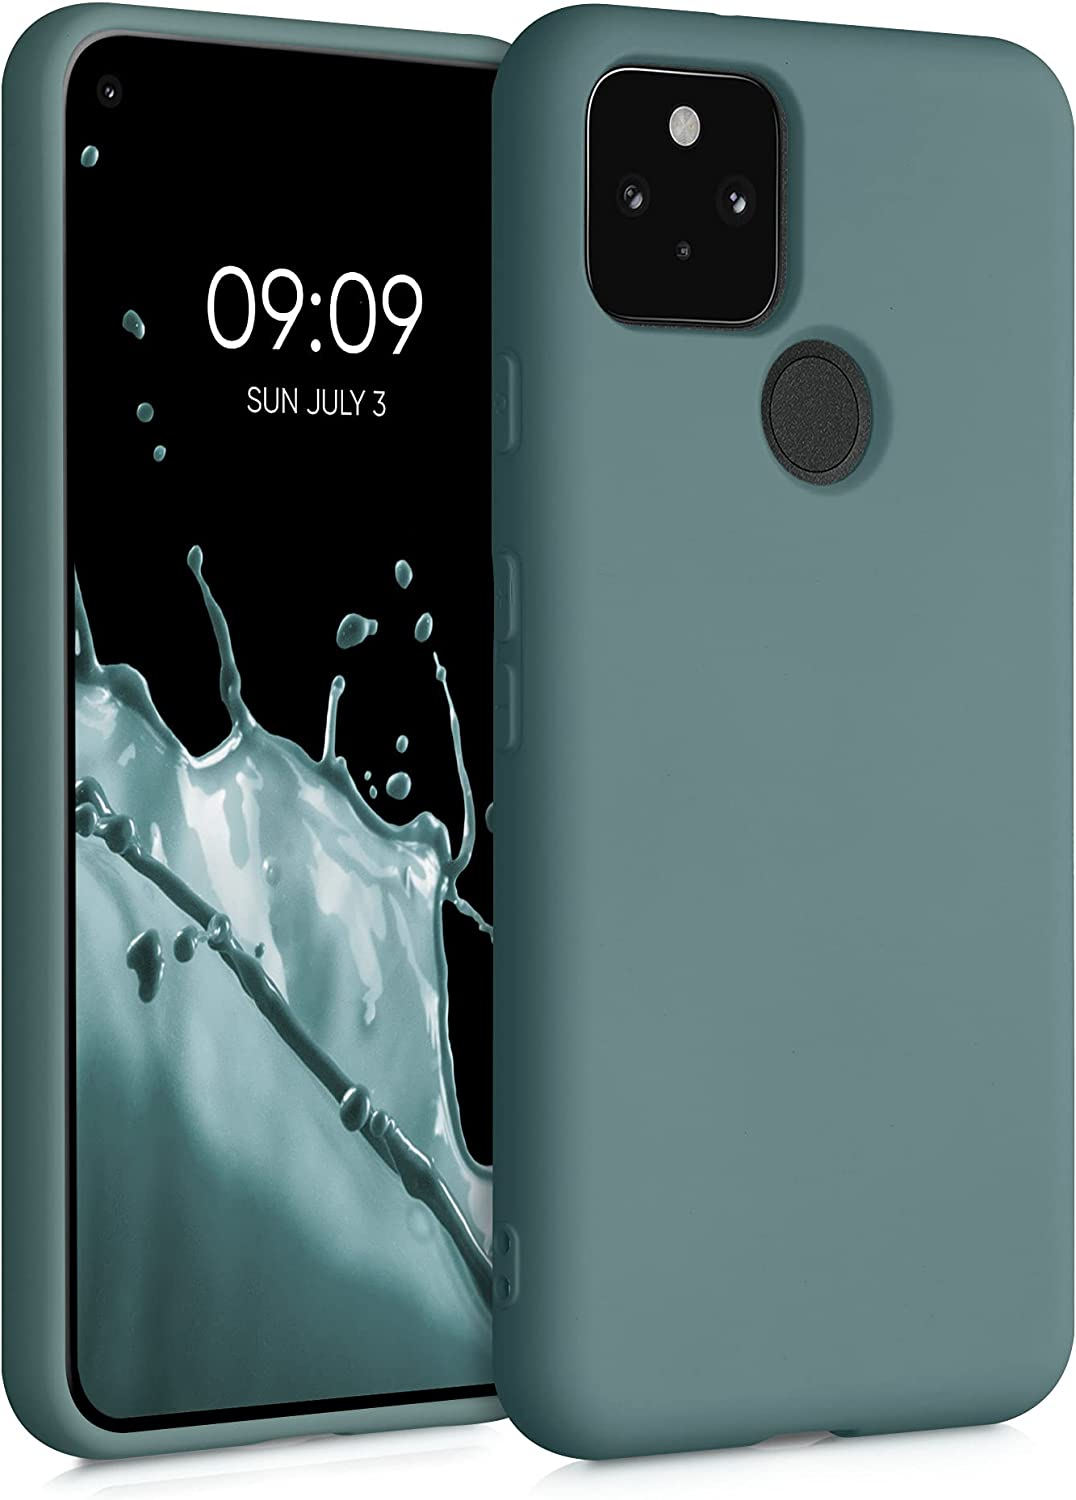 kwmobile Case Compatible with Google Pixel 5 - Case Soft TPU Slim Protective Cover for Phone - Arctic Blue